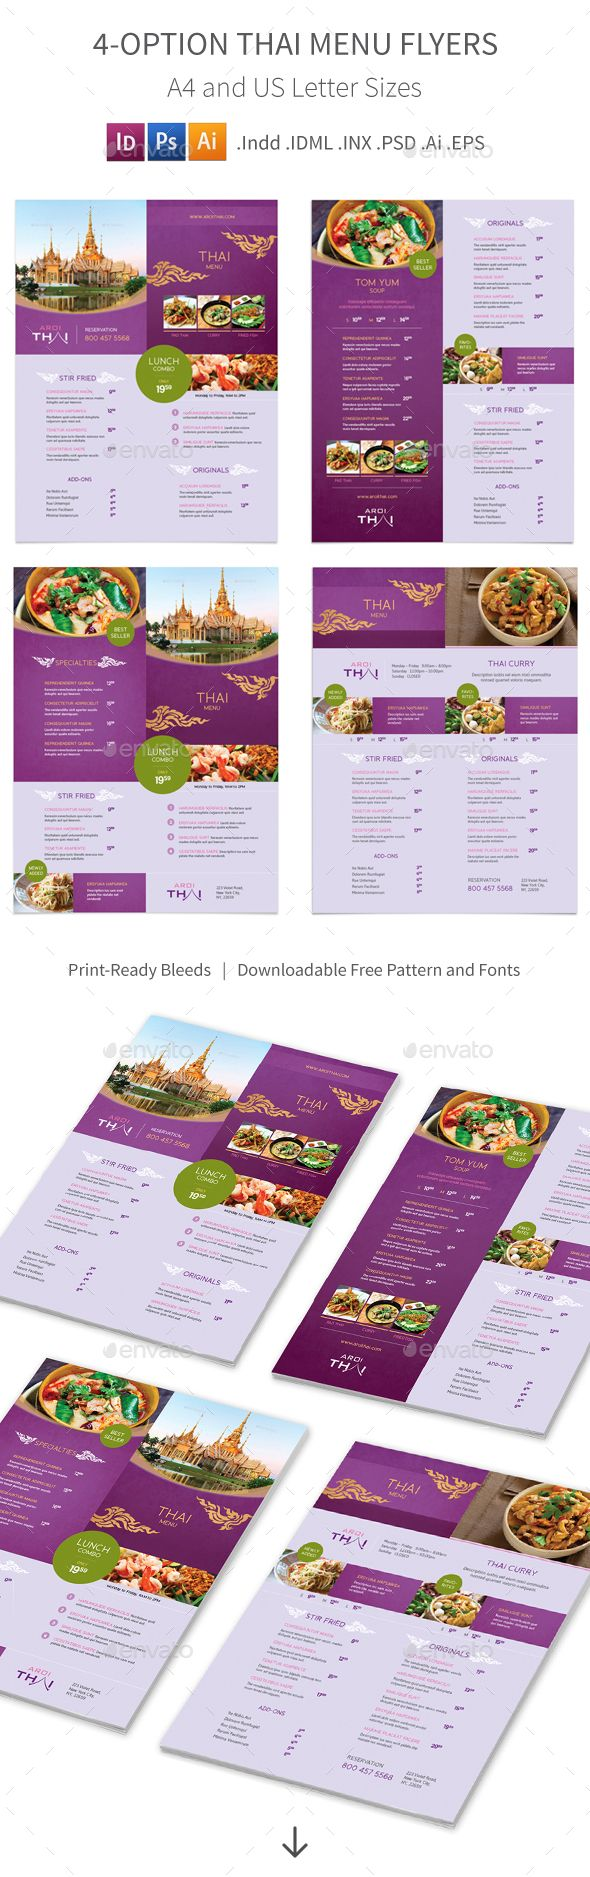 Awesome Thai Restaurant Menu PSD Flyer  Template • Only available here ➝ http://graphicriver.net/item/thai-restaurant-menu-flyers-2-4-options/16390993?ref=pxcr